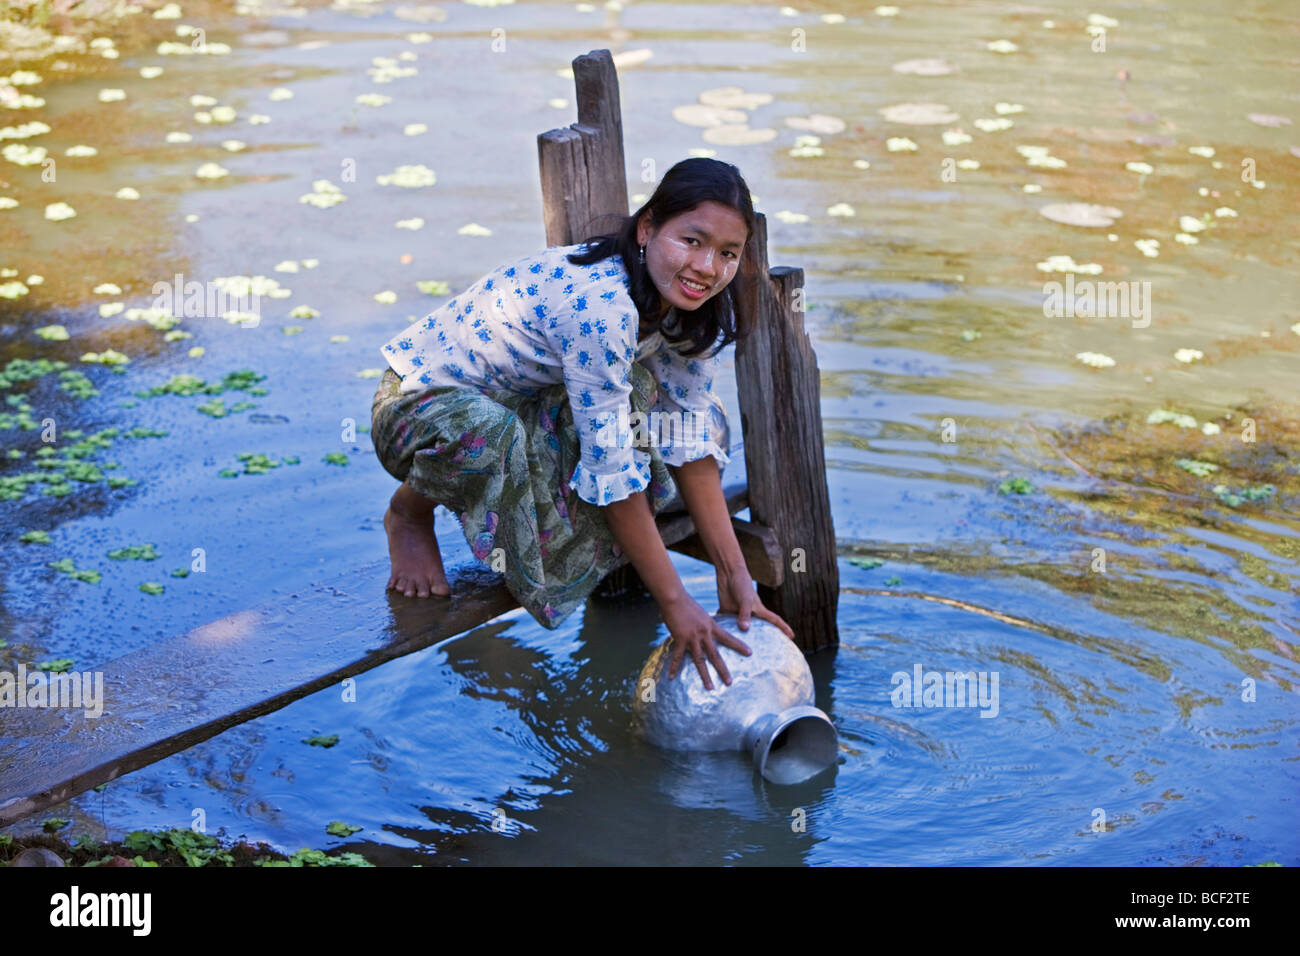 Myanmar, Burma, Mrauk U. A young Rakhine woman draws water in an aluminium pot from a rainwater pond near her village. - Stock Image